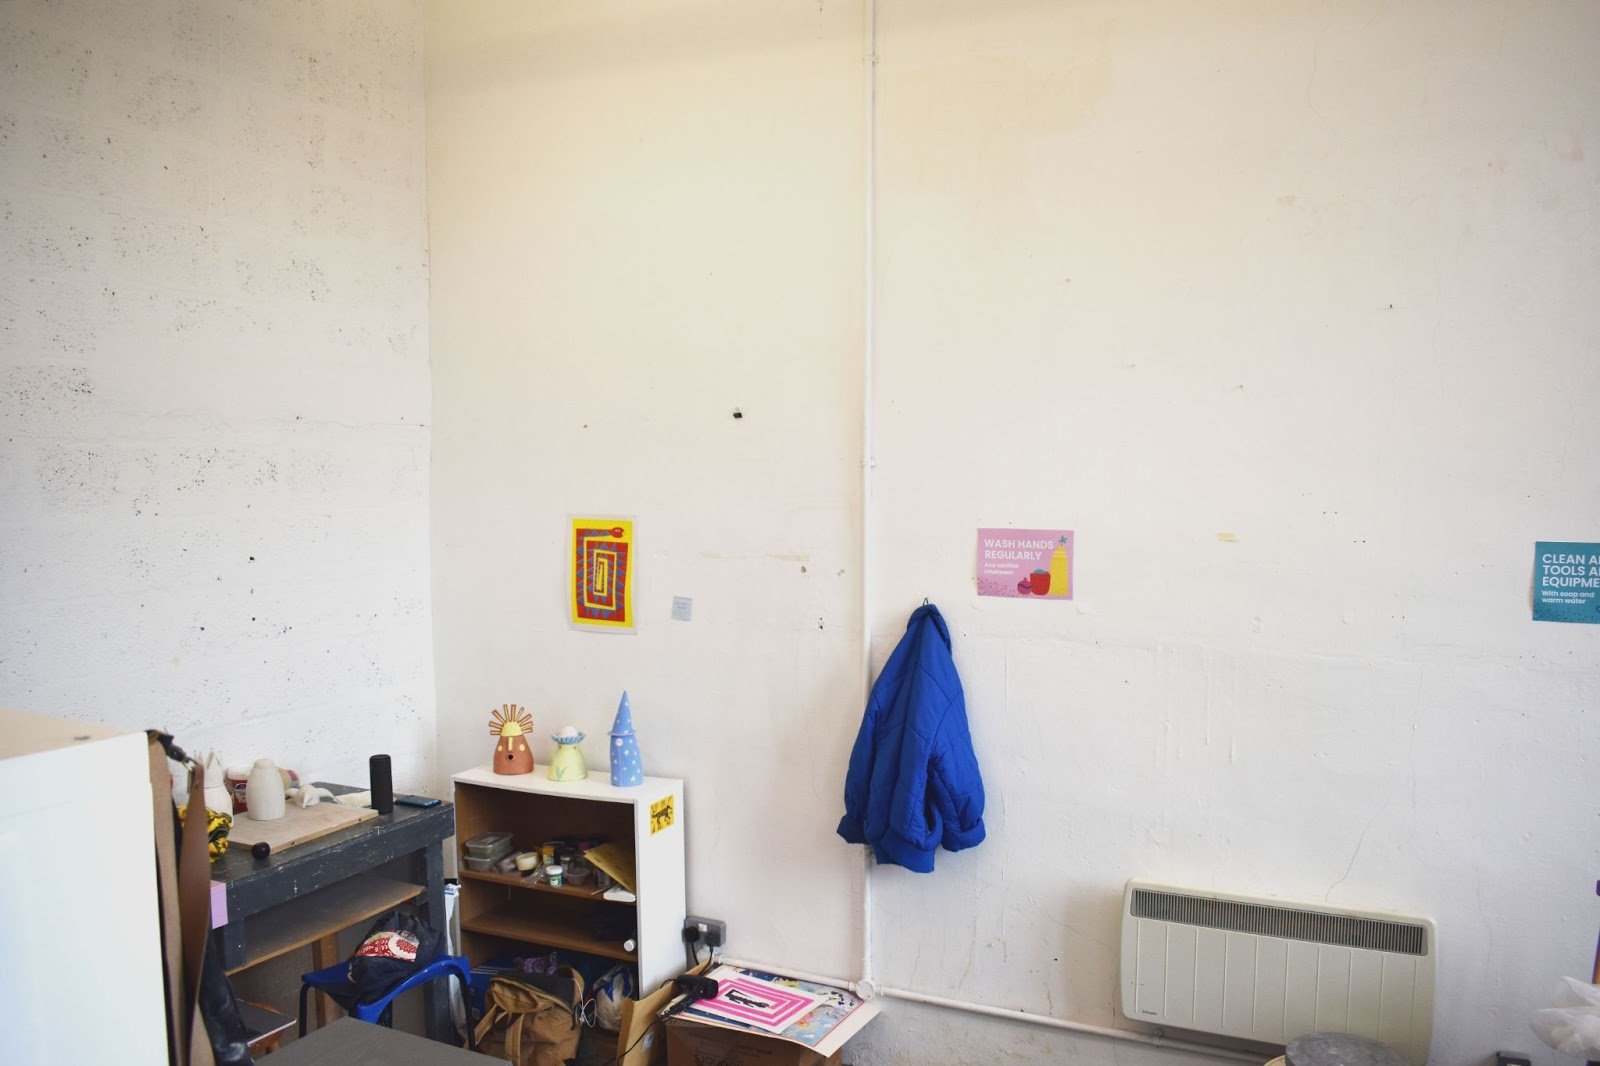 Open Call: Mural for Dundee Ceramics Workshop Image #1